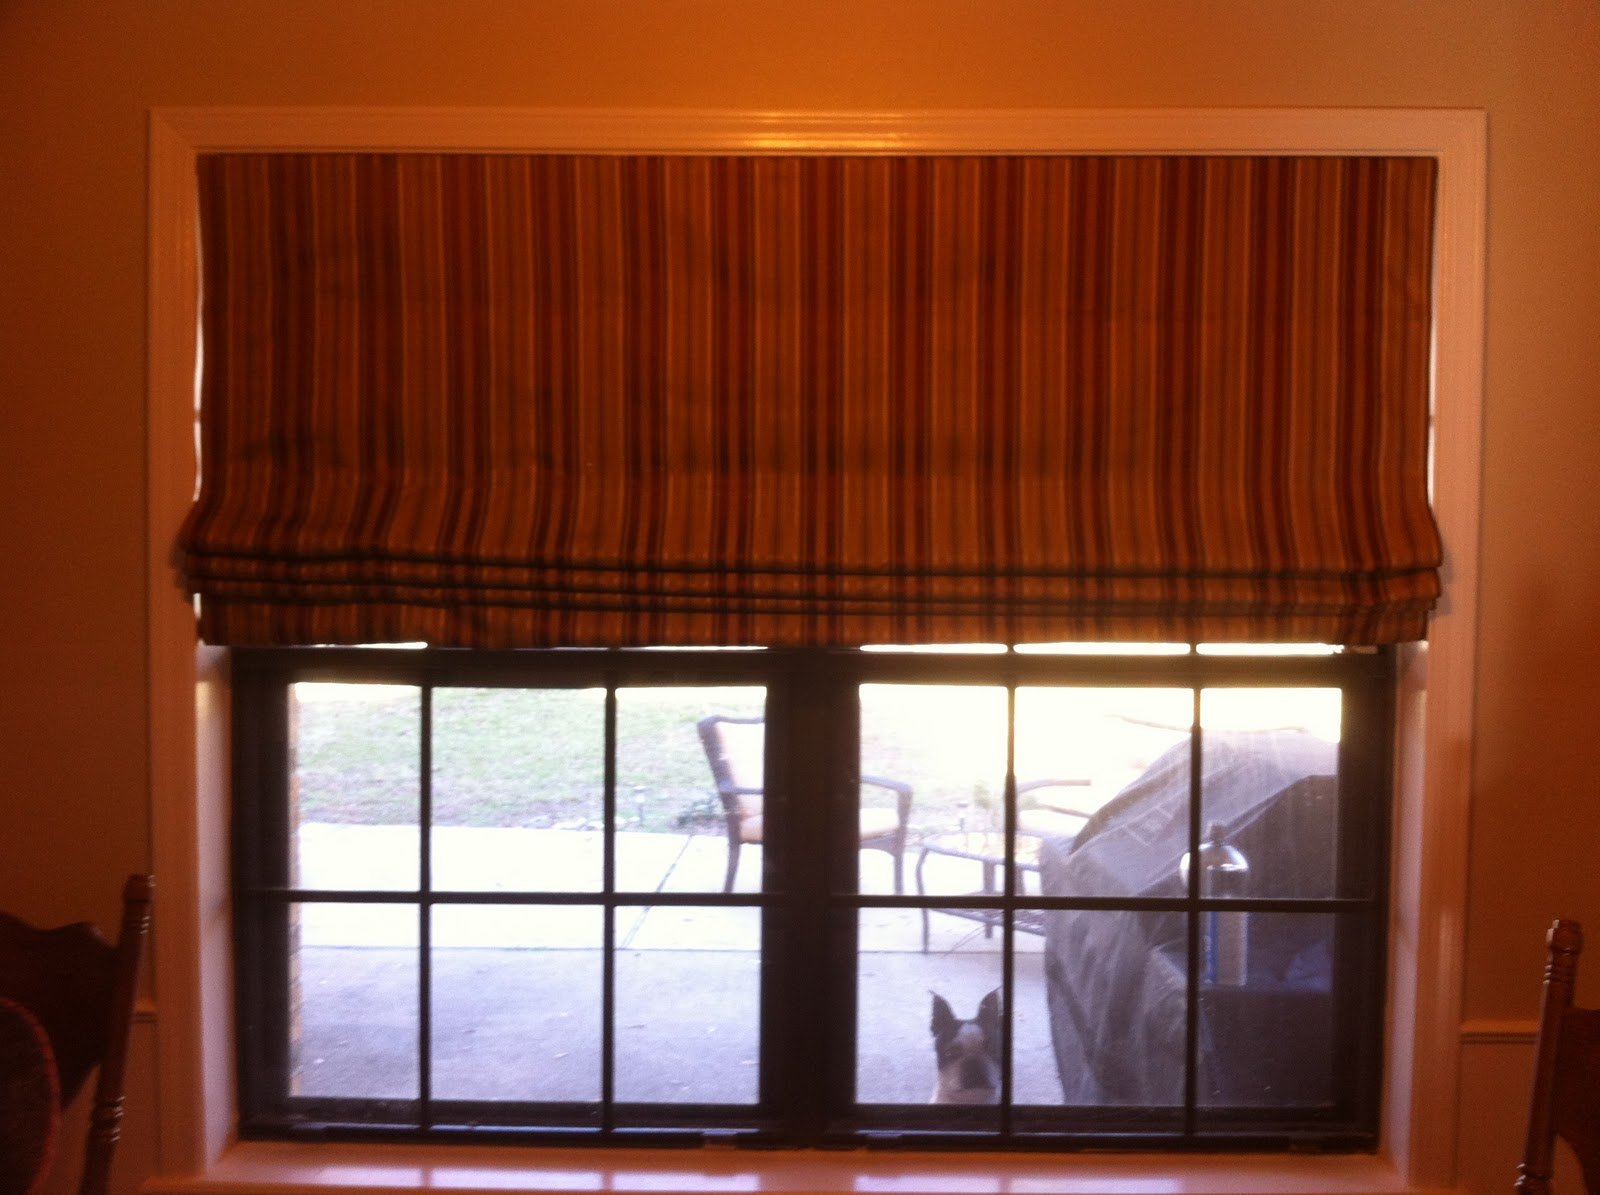 Snazzy Strawberry Blonde Diy No Sew Roman Shades From